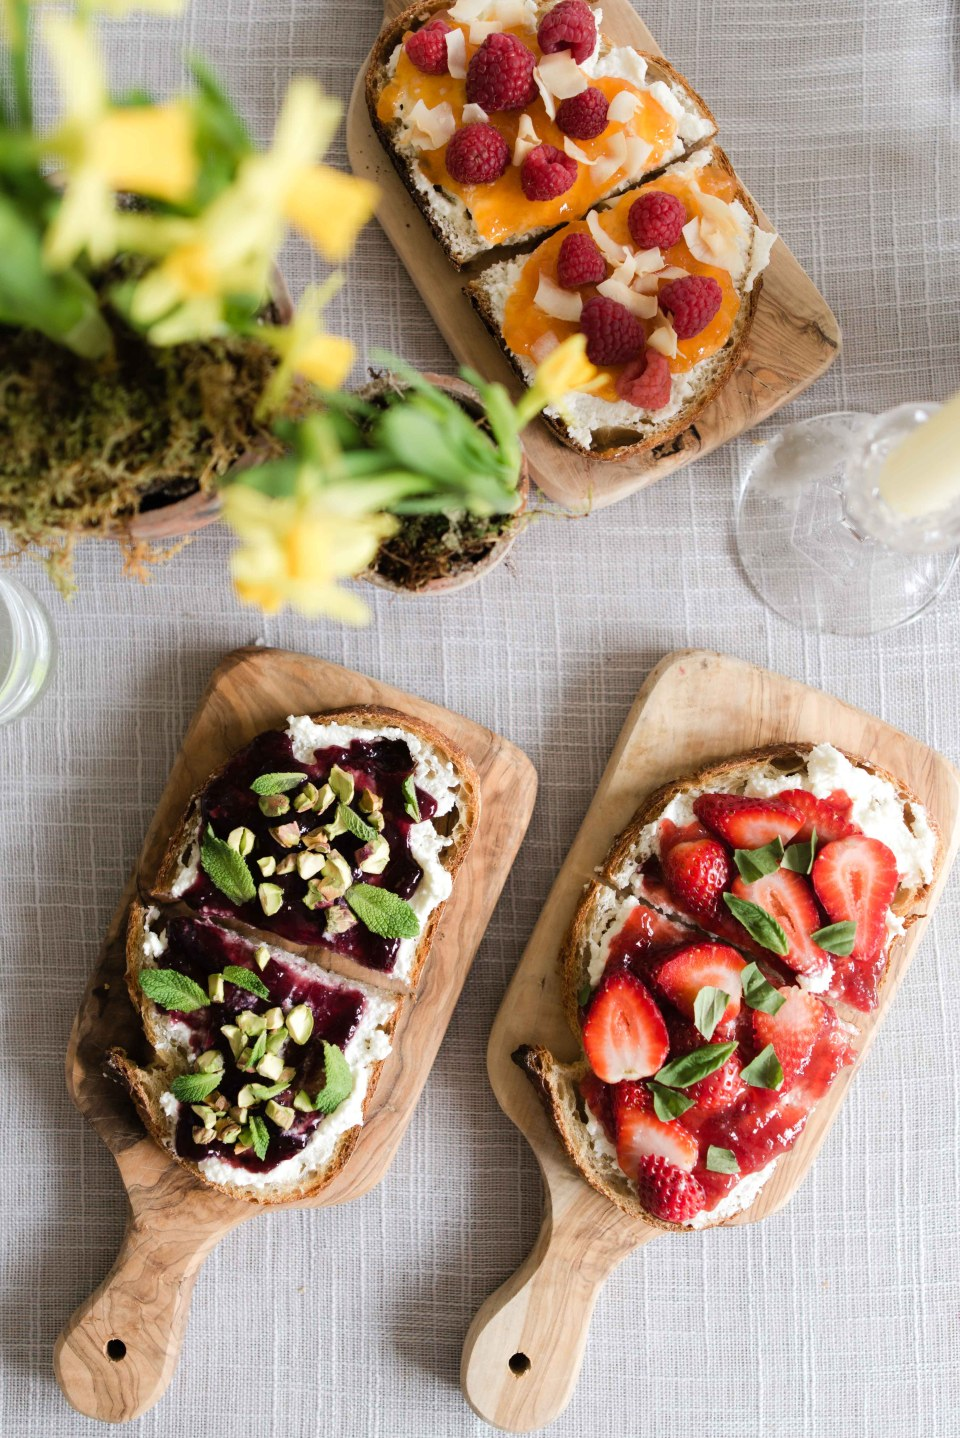 Brunch Ideas - Ricotta Toast Recipes with E.D. Smith